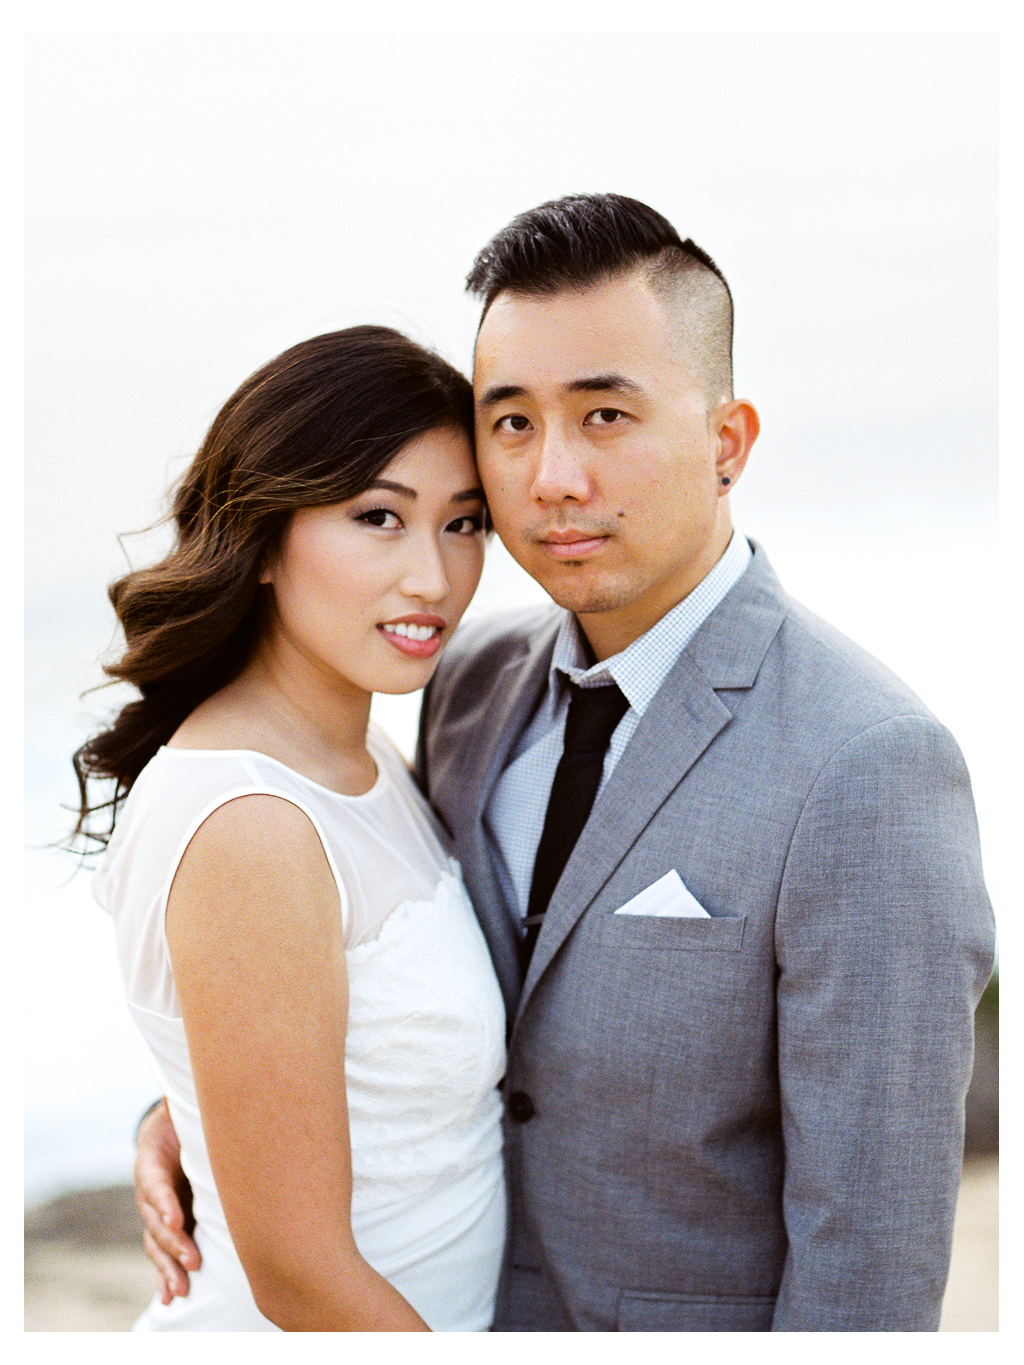 Couple engagement session San Diego La Jolla Cliffs Oceanview